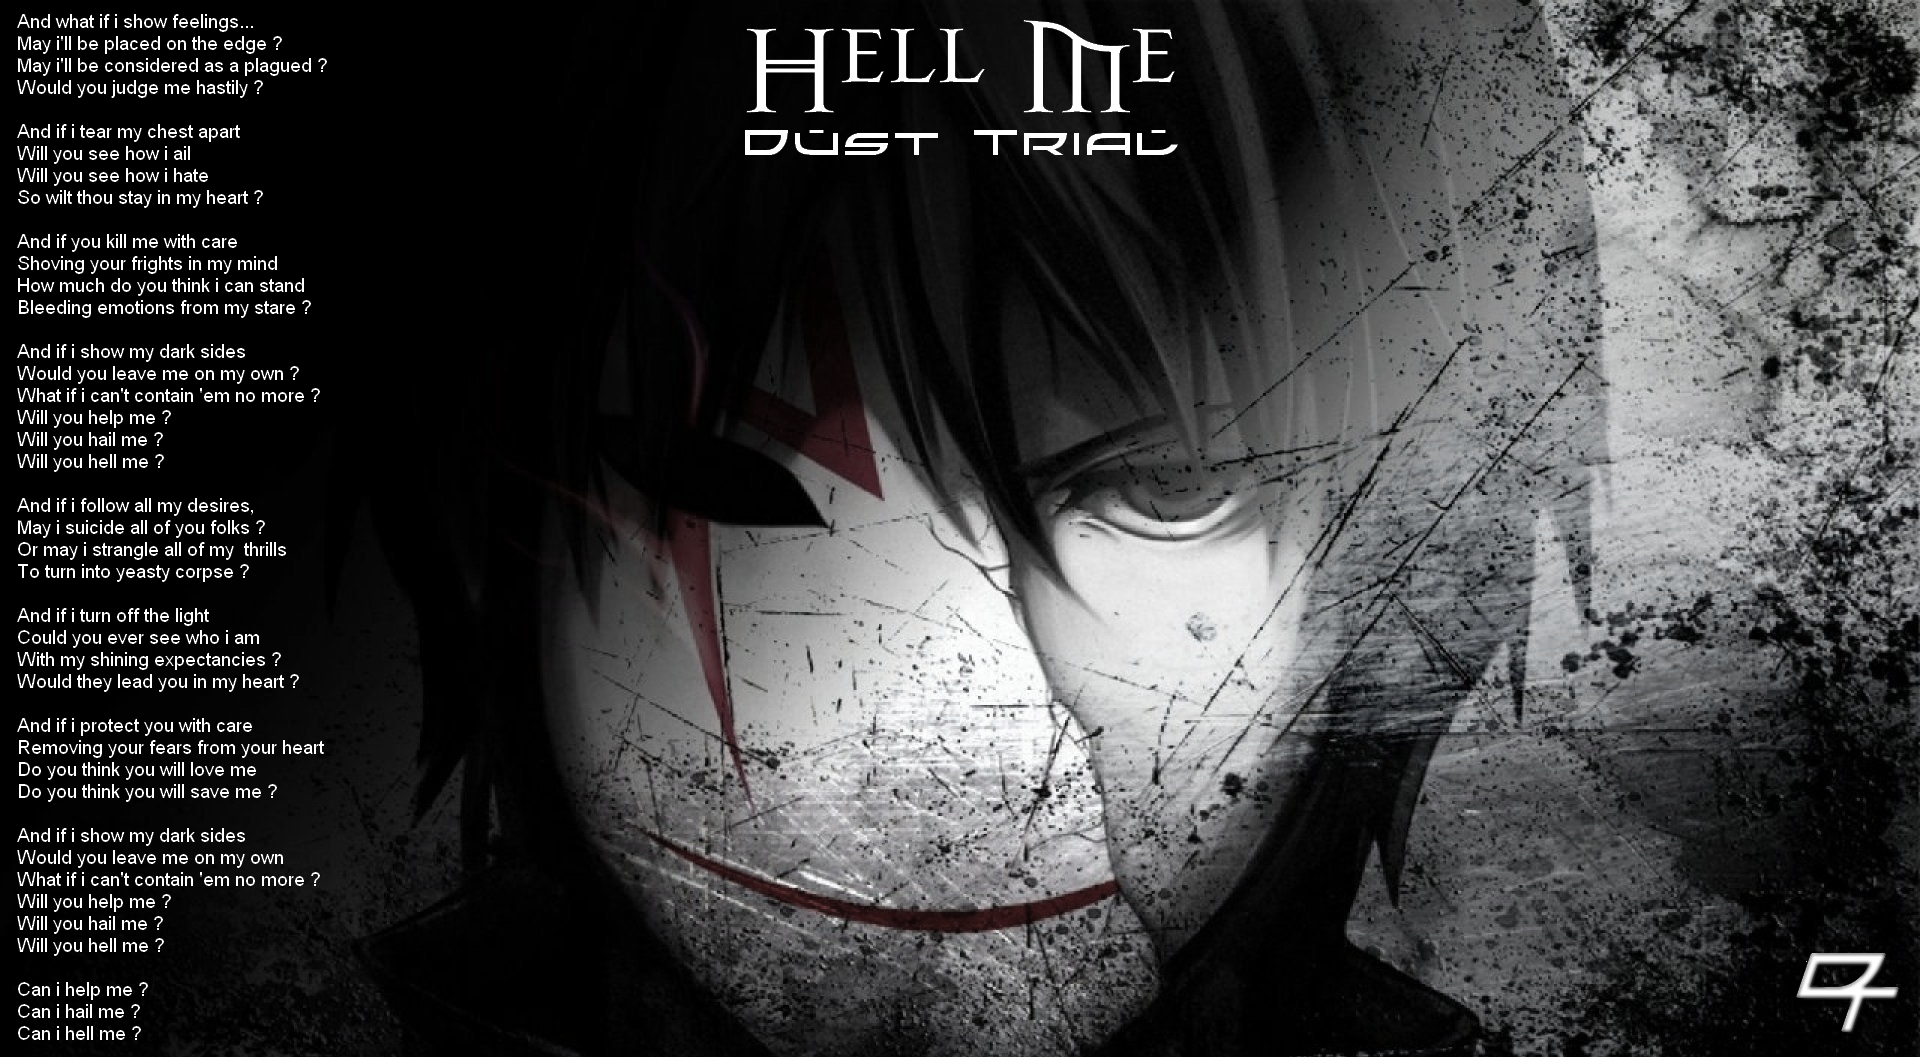 Hell me